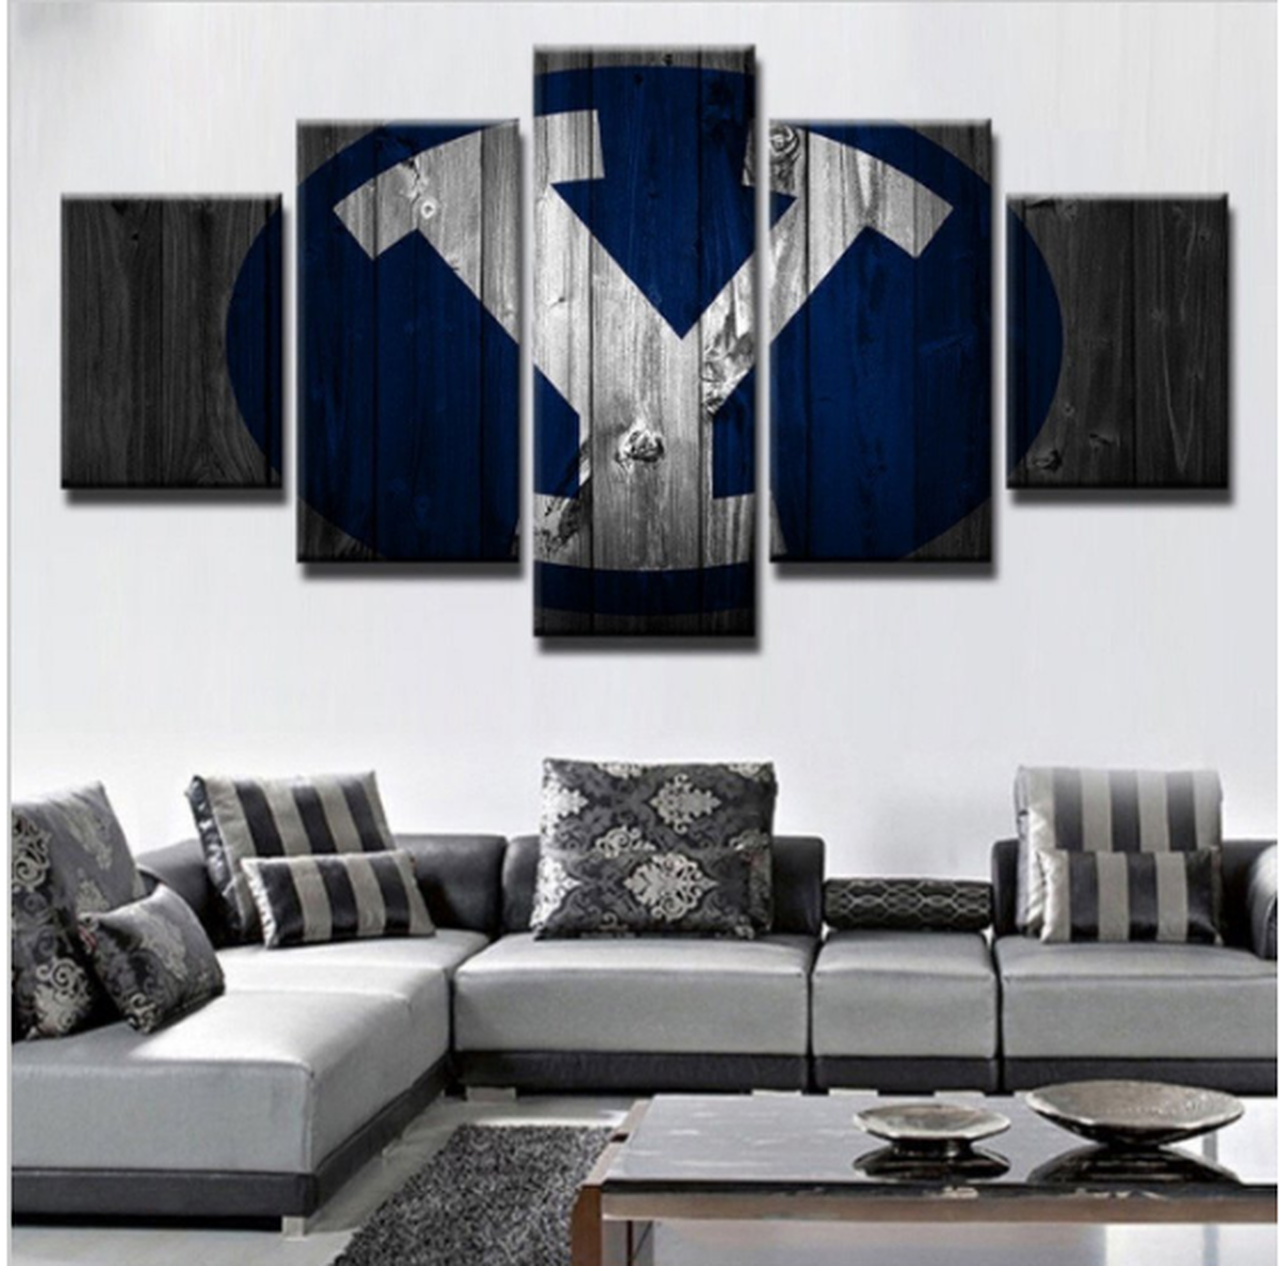 Byu Cougars Baseball Sport 5 Panel Canvas Art Wall Decor Canvas Art Wall Decor Canvas Wall Decor Wall Canvas